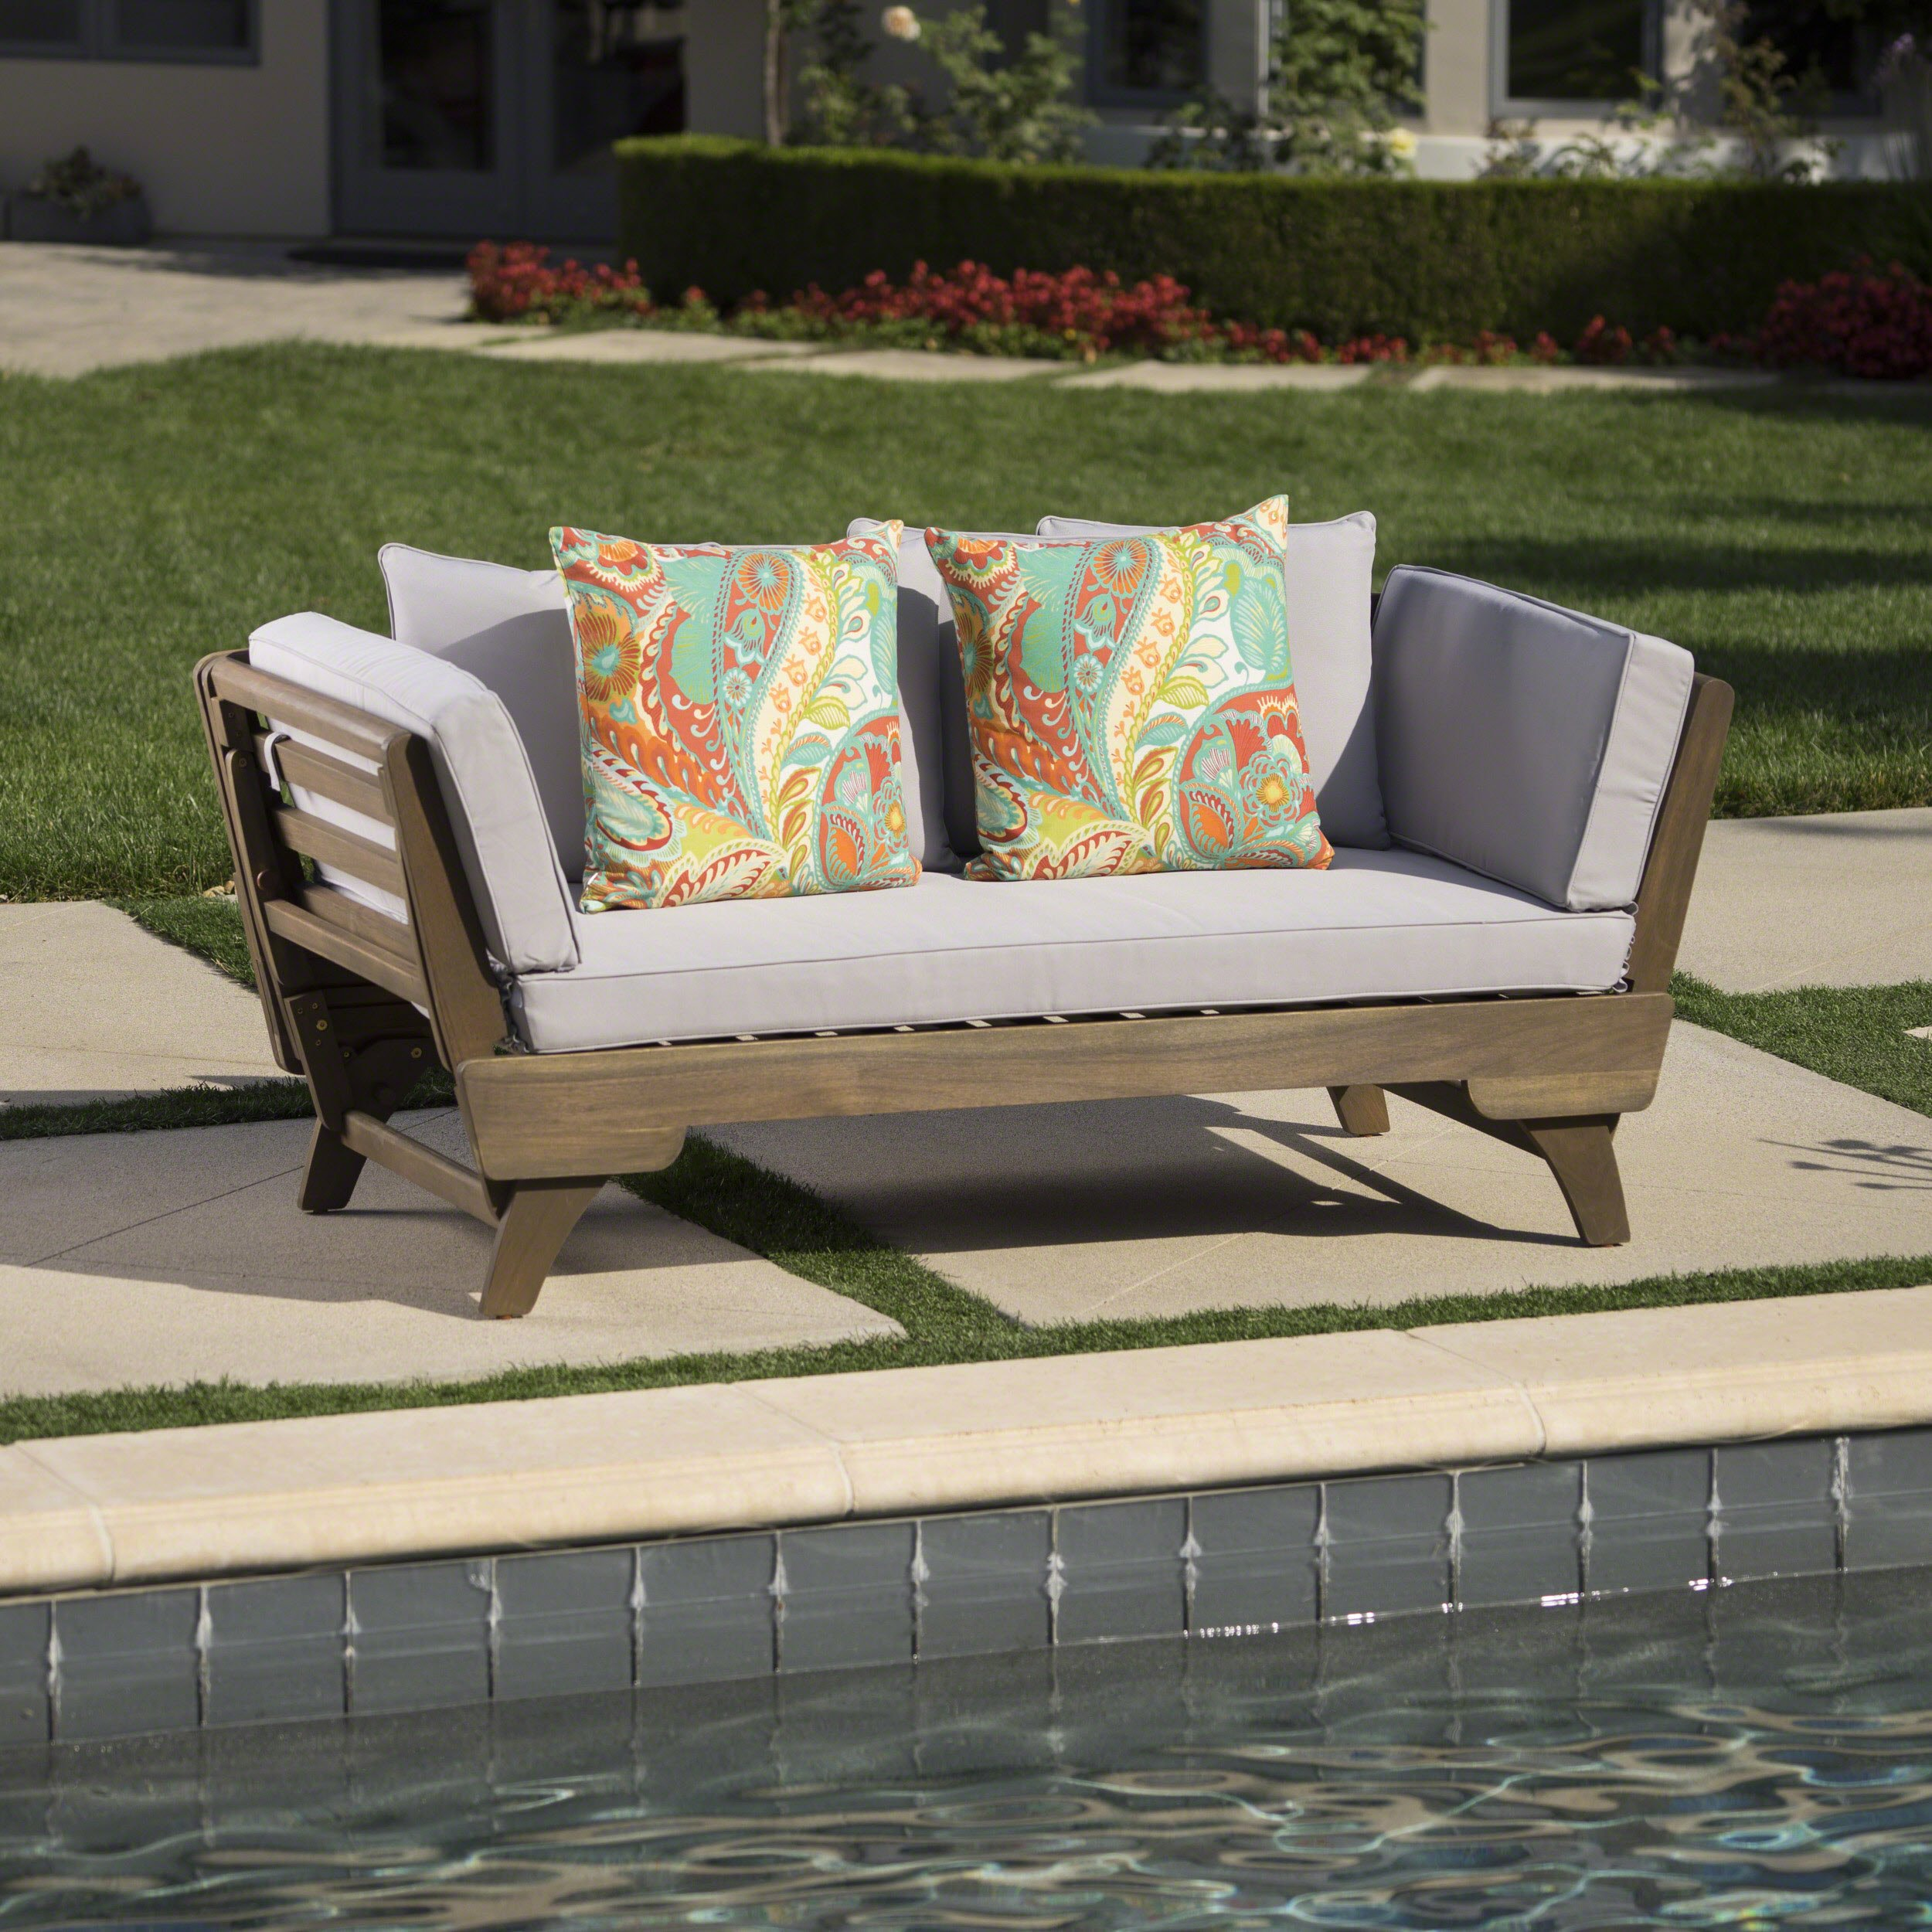 Othello Outdoor Finished Resistant Cushions